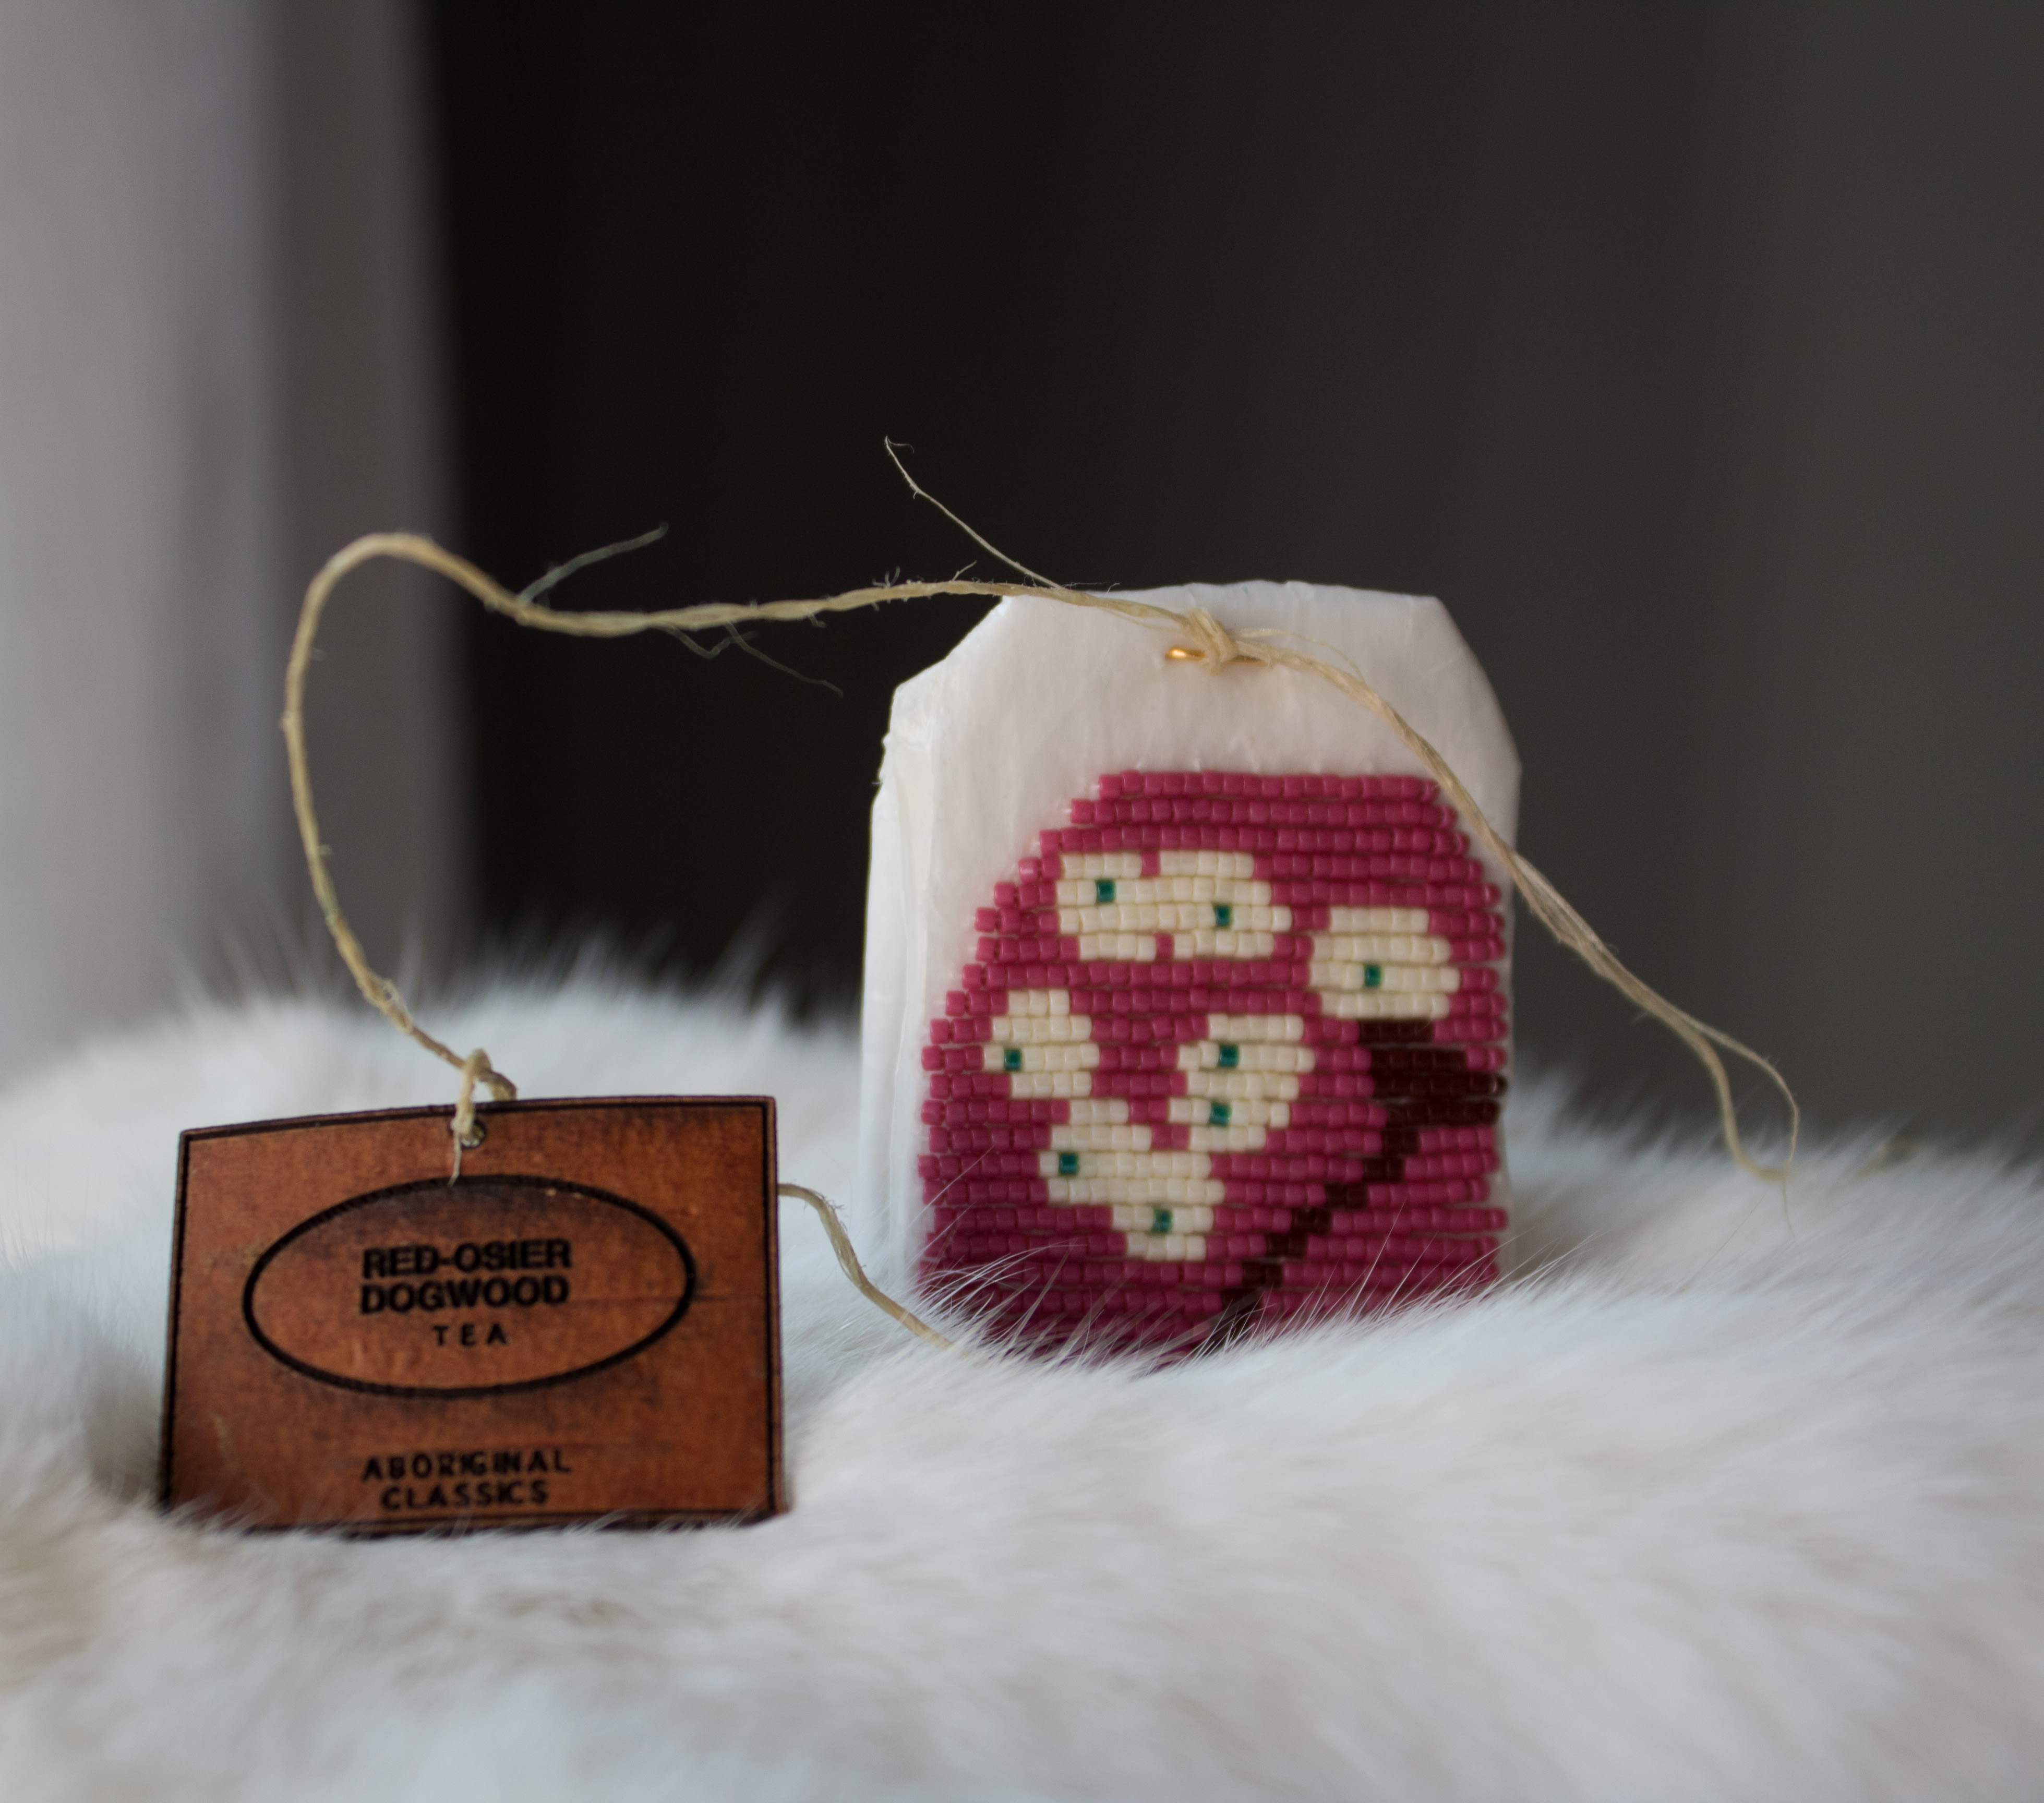 Art by Catherine Blackburn - a tea bag encrusted with red and white beads on a fur blanket